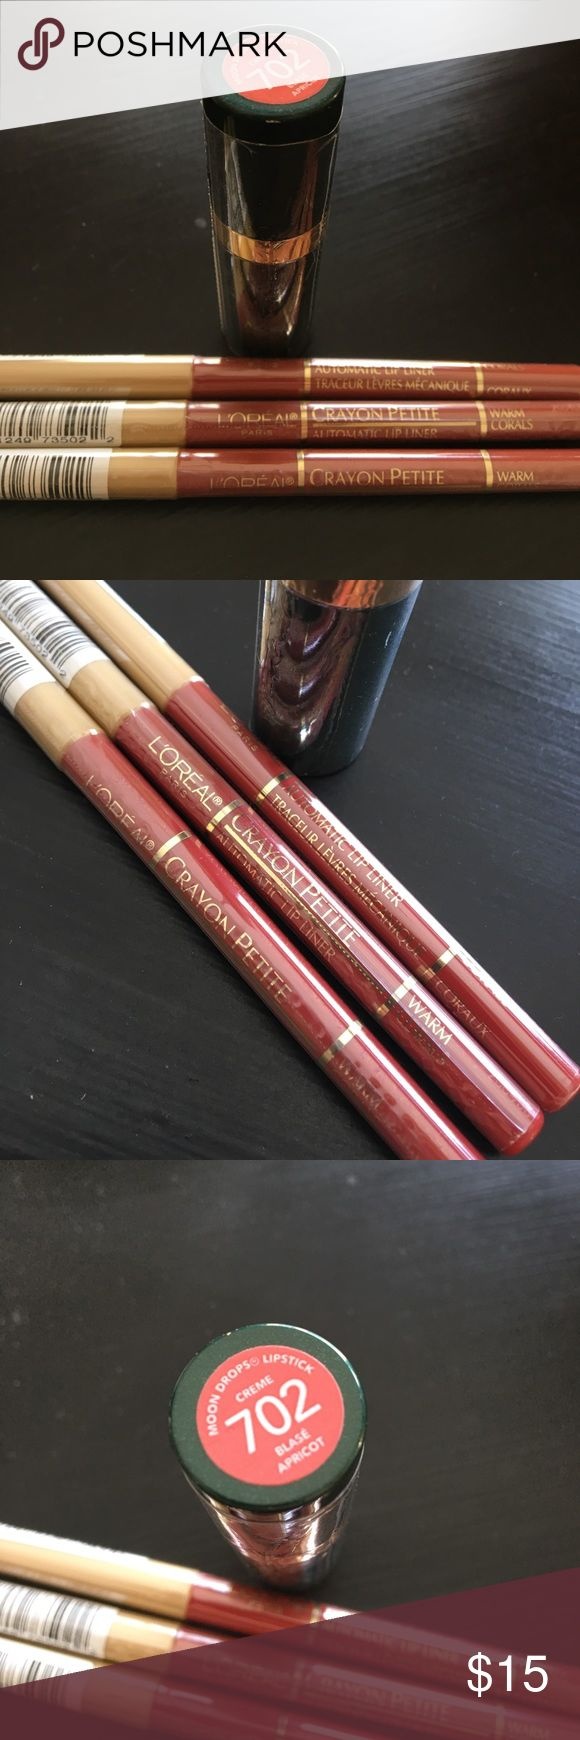 "Warm Corals Revlon lipstick L'Oréal liner bundle This listing is for all 3 NWT lip liner pencils from L'Oréal in ""Warm Corals"" color, plus one NWT moon drops lipstick from Revlon in ""Blase Apricot"" 702 color. L'Oreal Makeup Lip Liner"